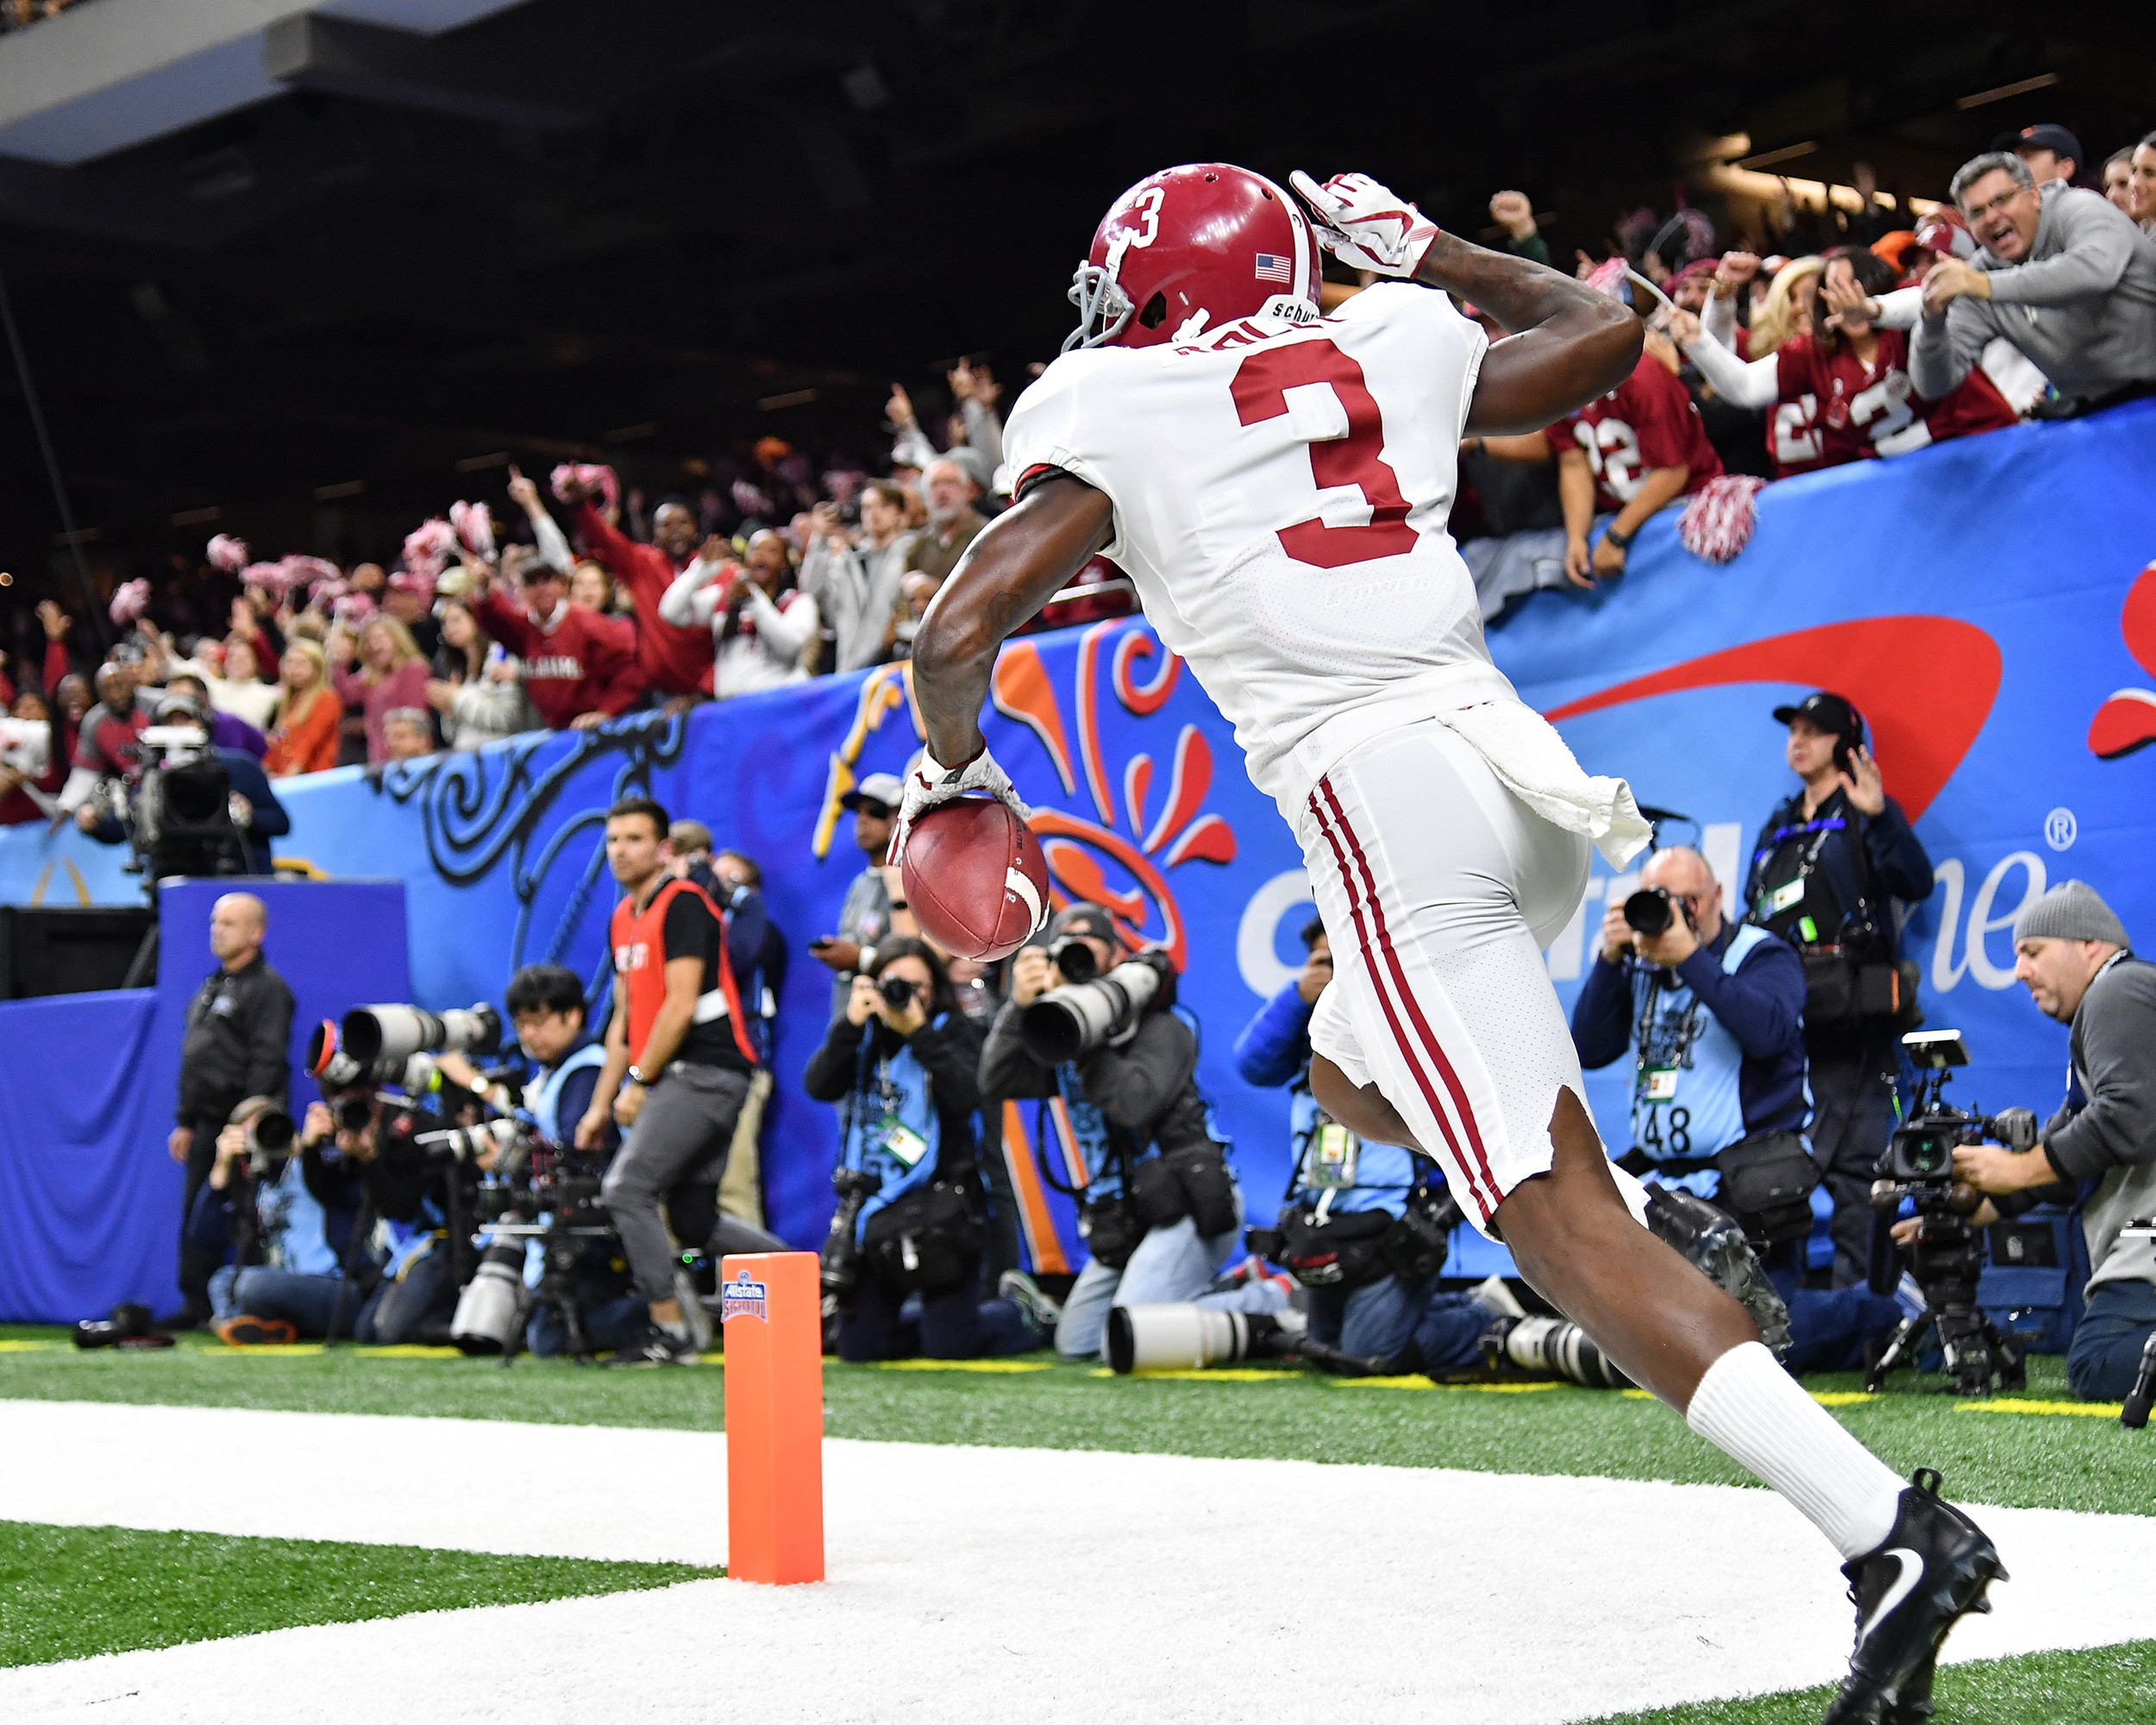 Alabama Crimson Tide wide receiver Calvin Ridley (3) celebrates his touchdown catch in the first quarter of the 2018 AllState Sugar Bowl on Jan. 1, 2018, at the Mercedes-Benz SuperDome in New Orleans, La. Alabama won the game 24-6. (Photo by Lee Walls)